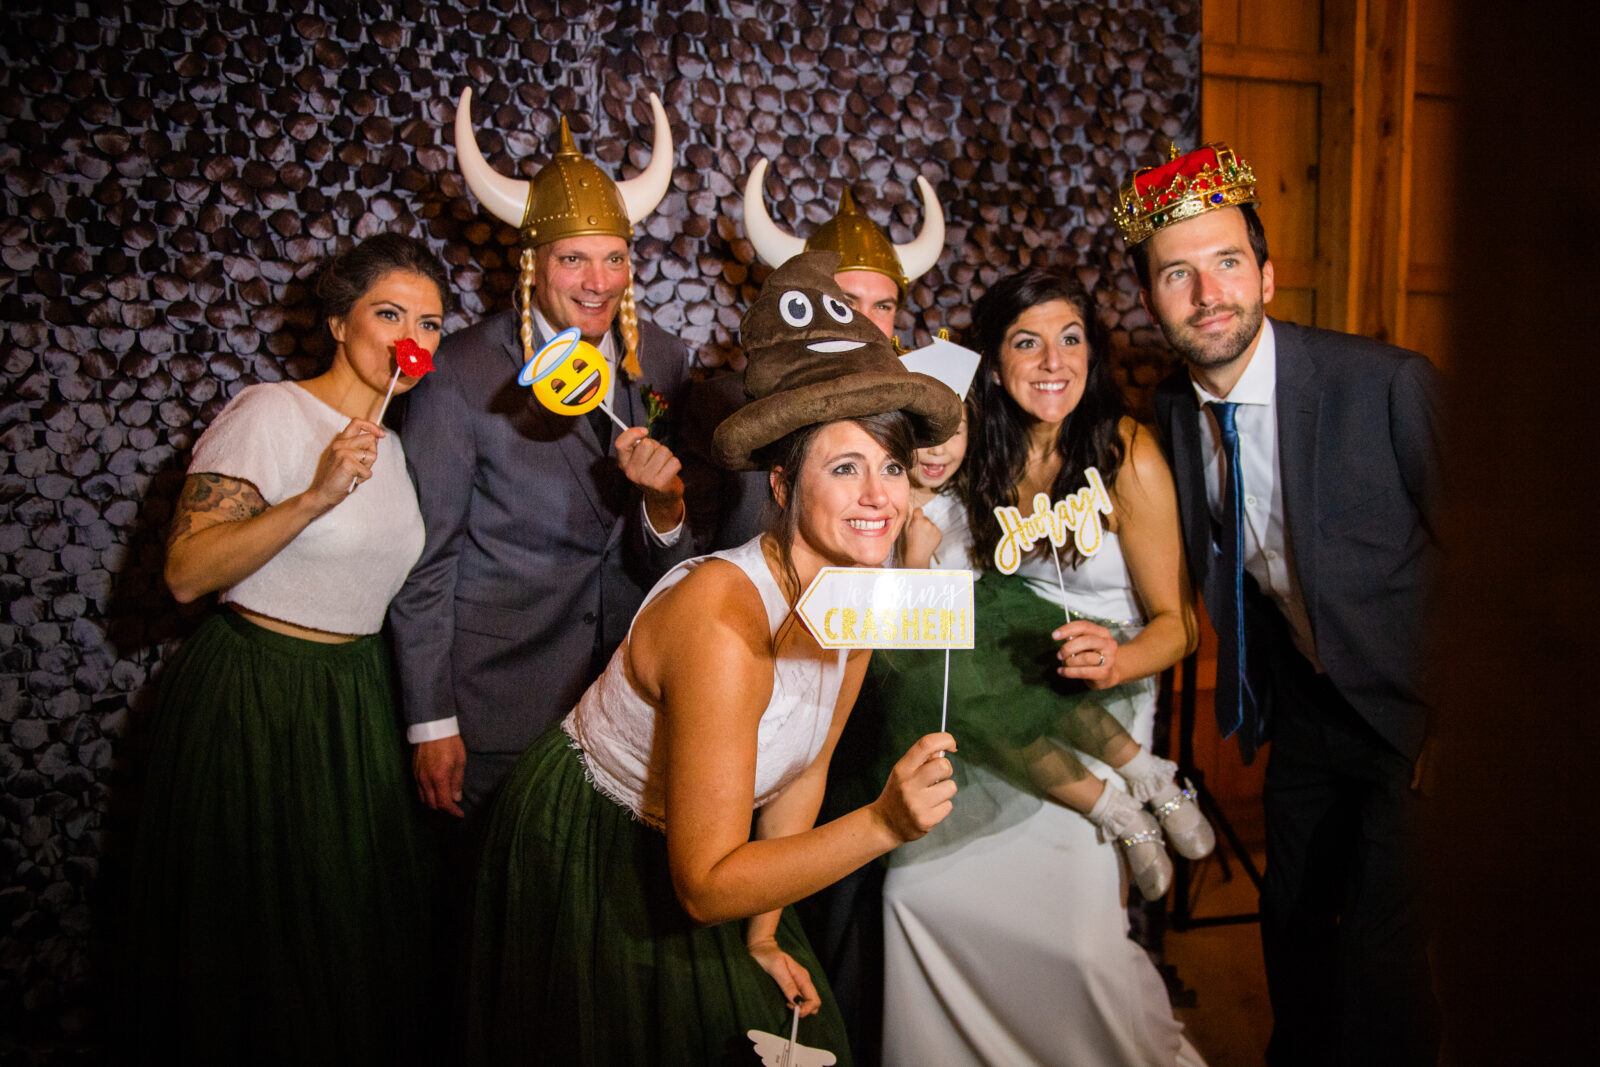 Wedding party poses for a photo booth photo wearing Viking helmets